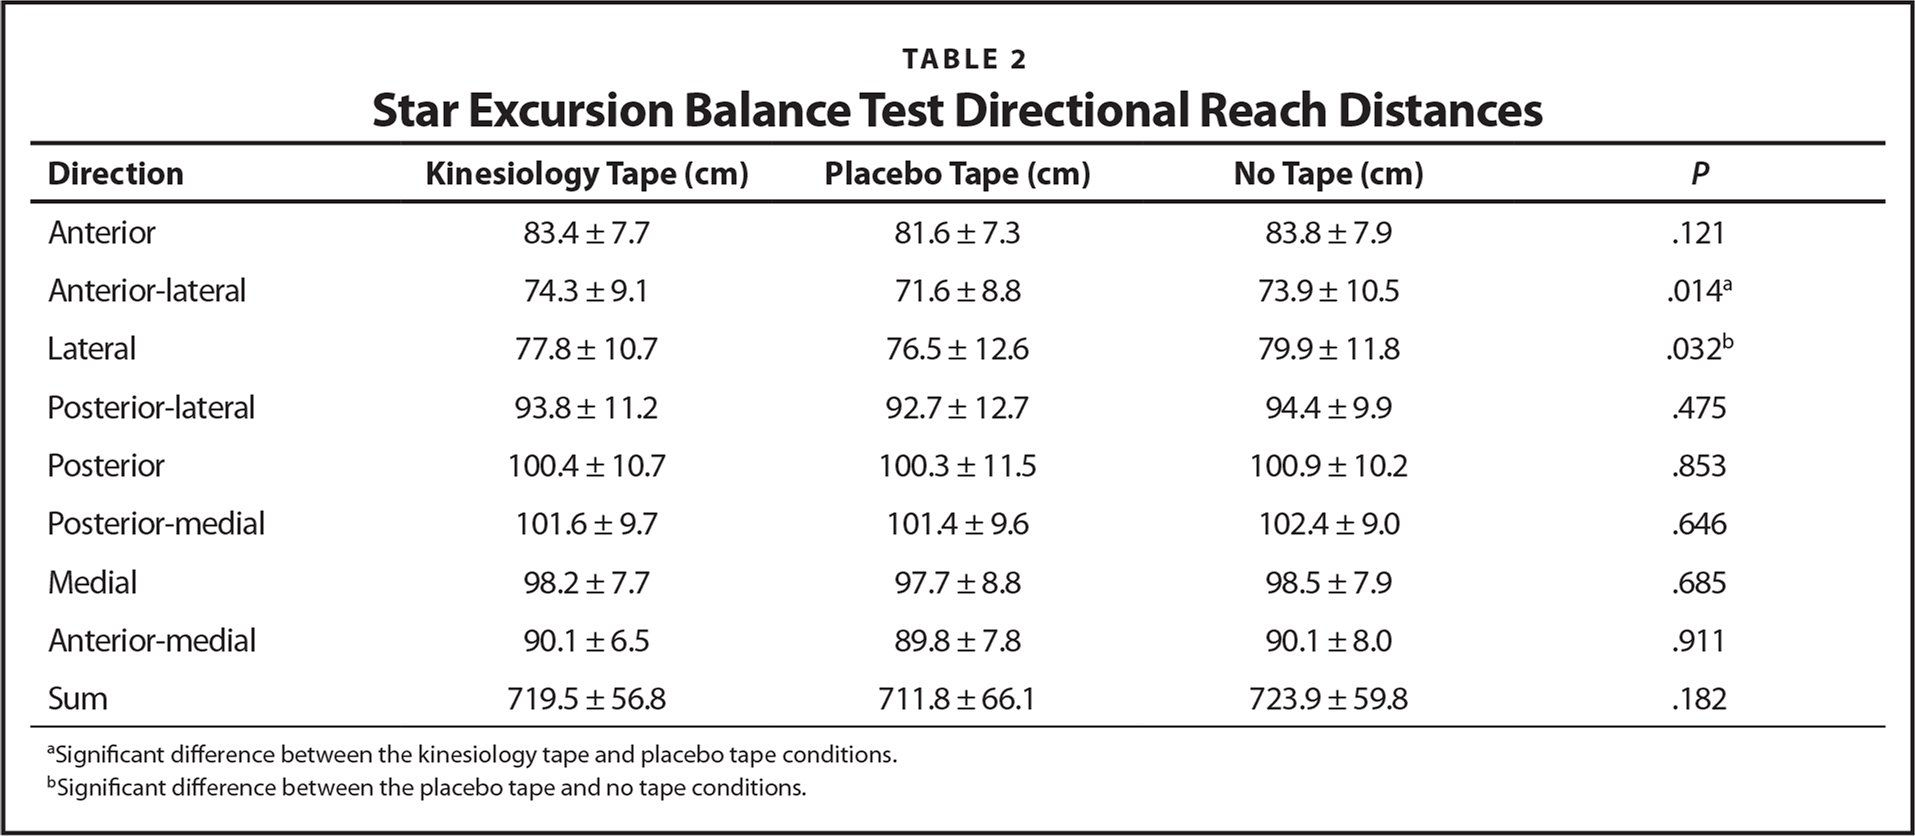 Star Excursion Balance Test Directional Reach Distances